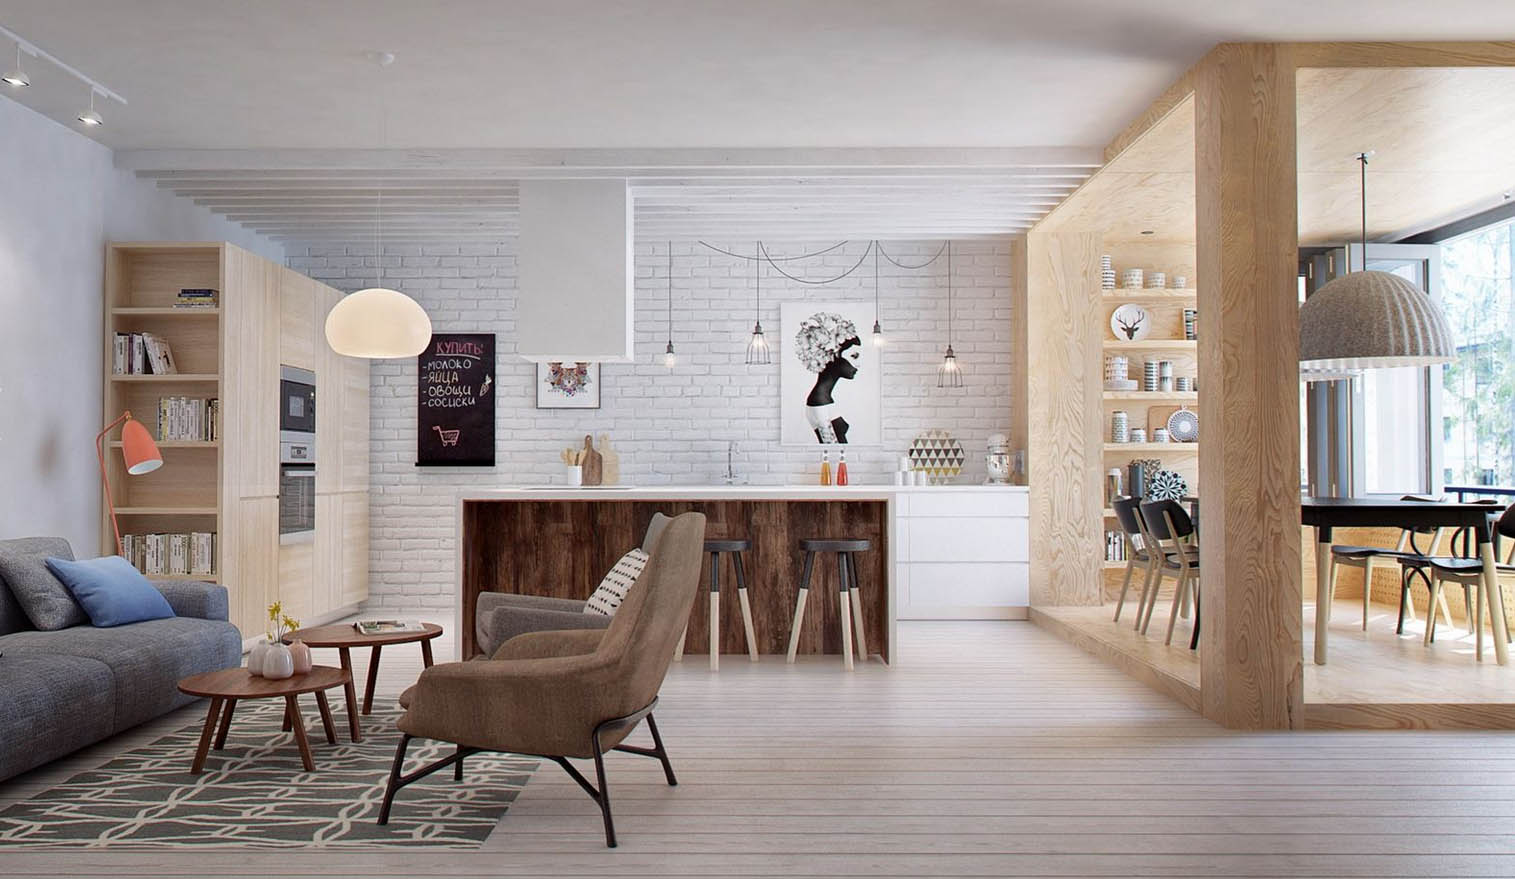 Appartamento interior id by int2architecture arc art for Piccolo design di appartamenti